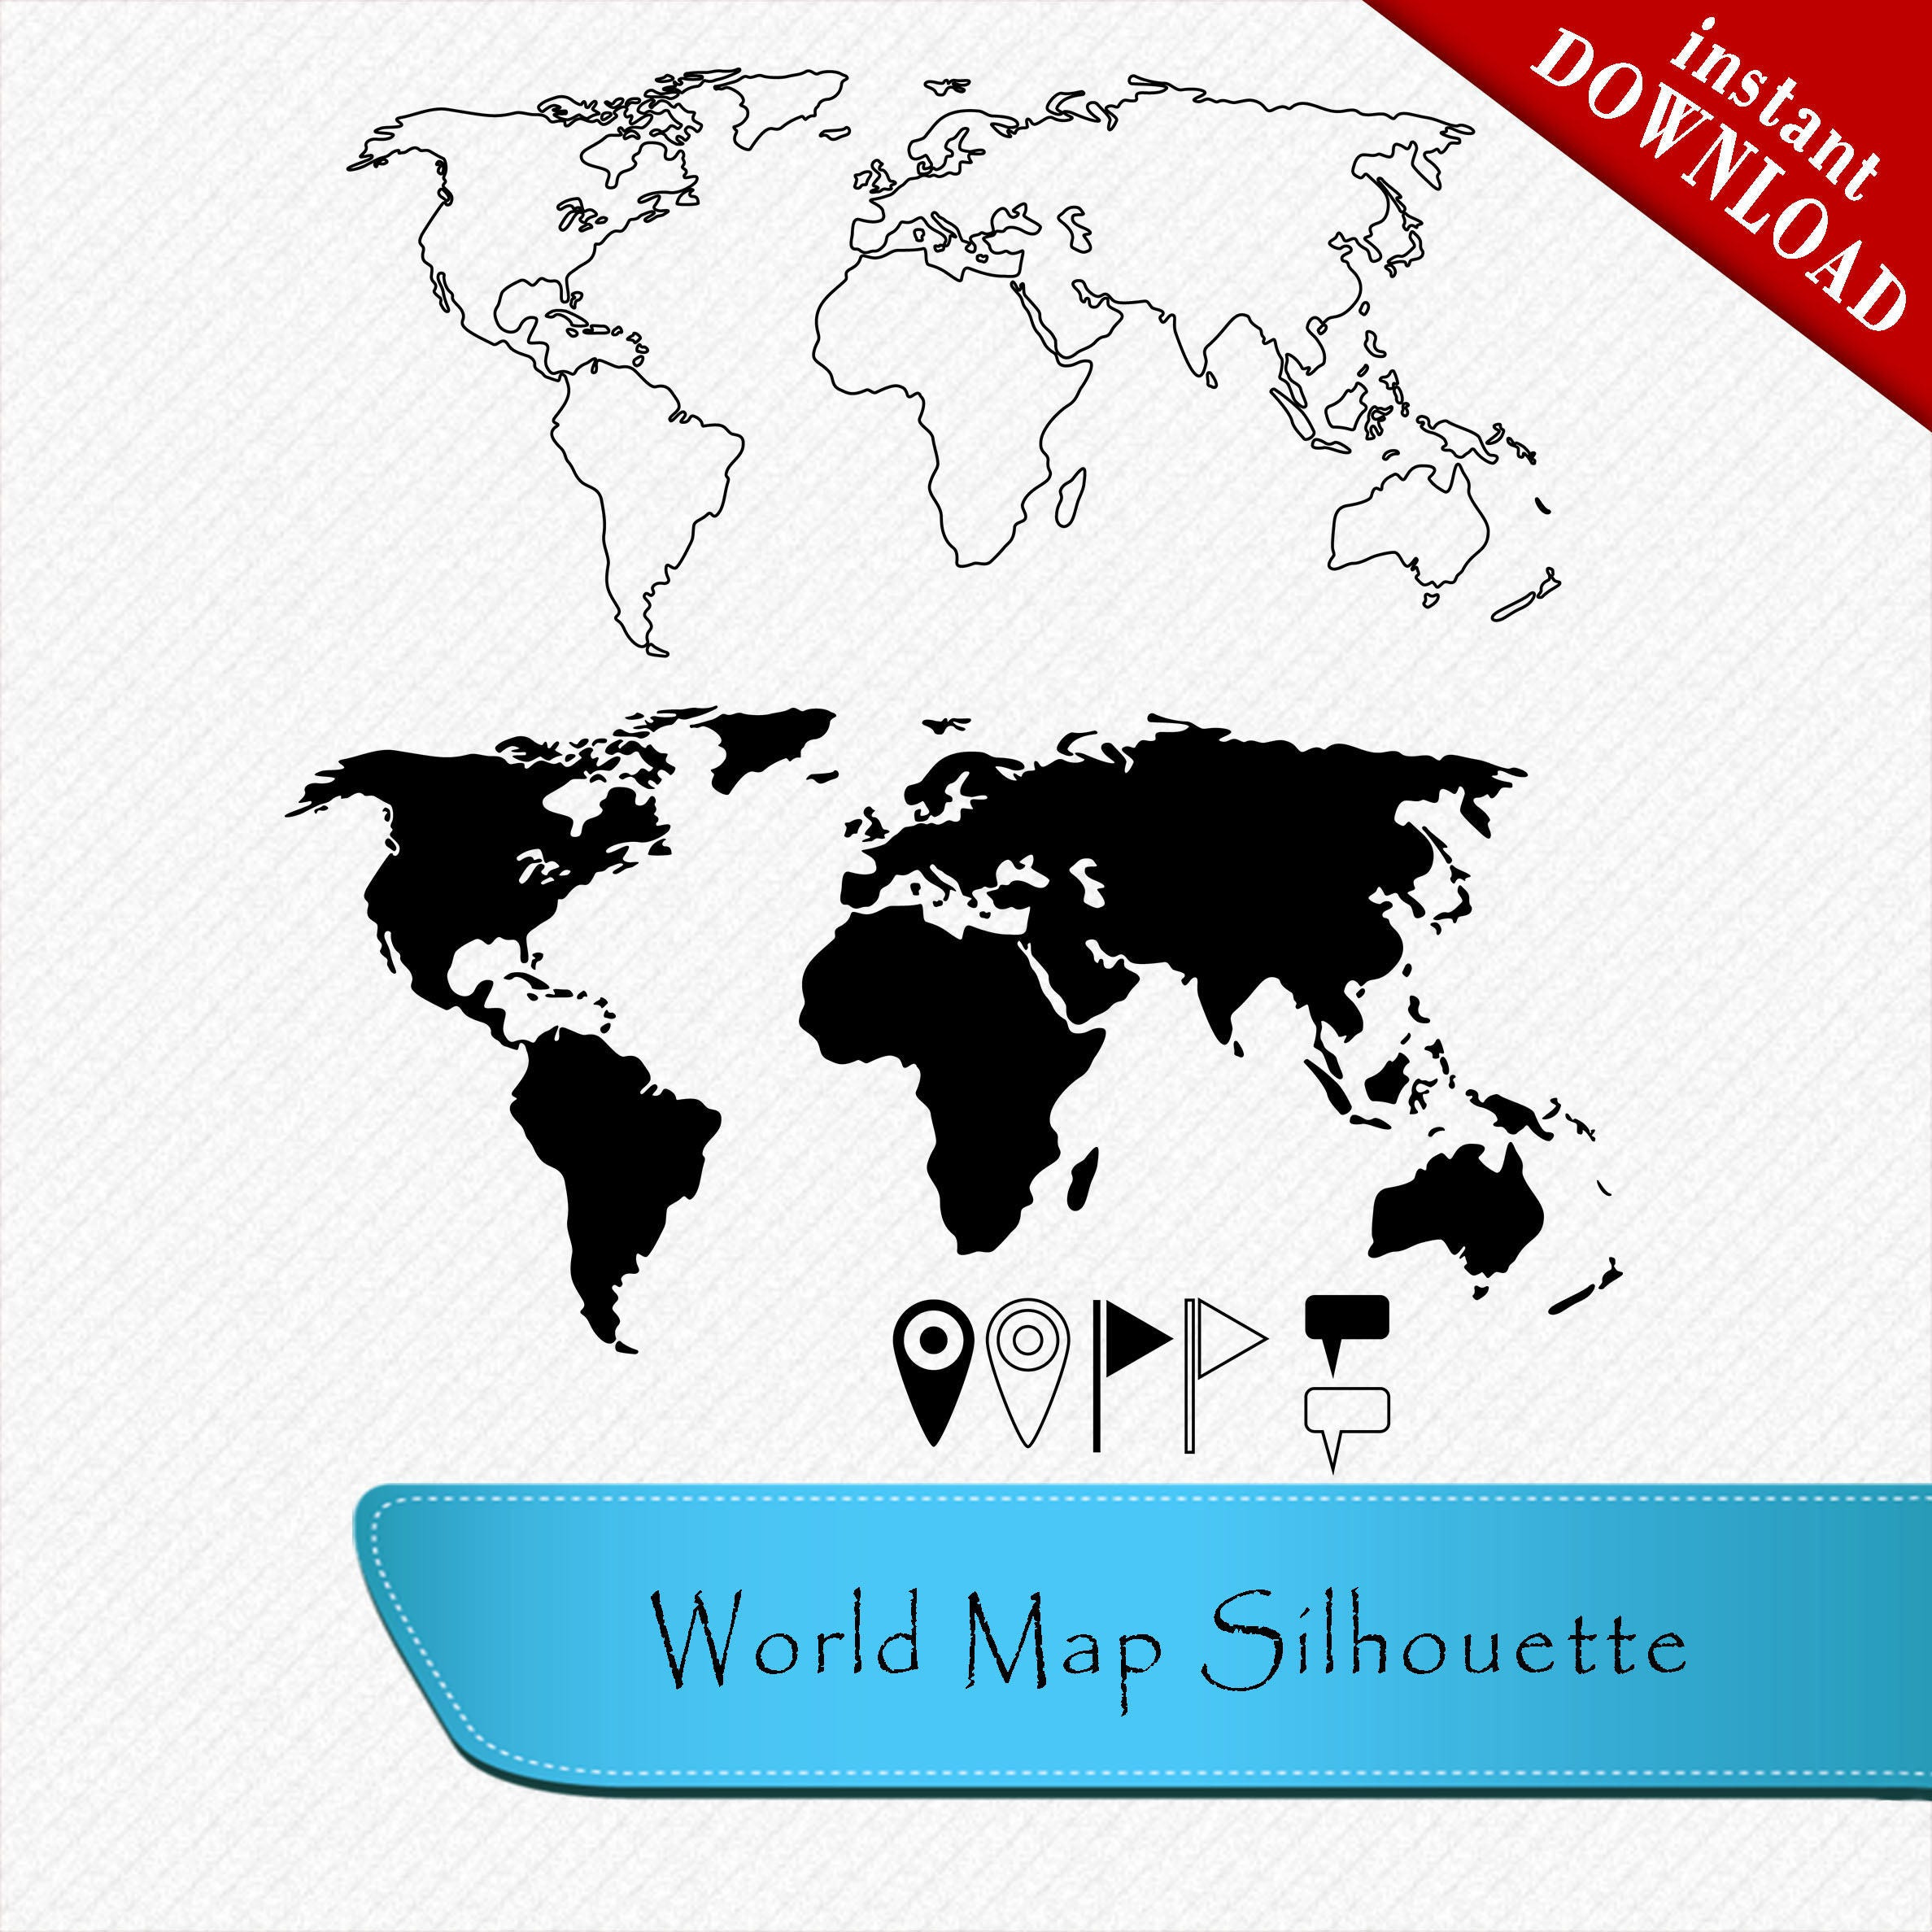 World map silhouette pins flags textbox clipart cut vector this is a digital file gumiabroncs Choice Image